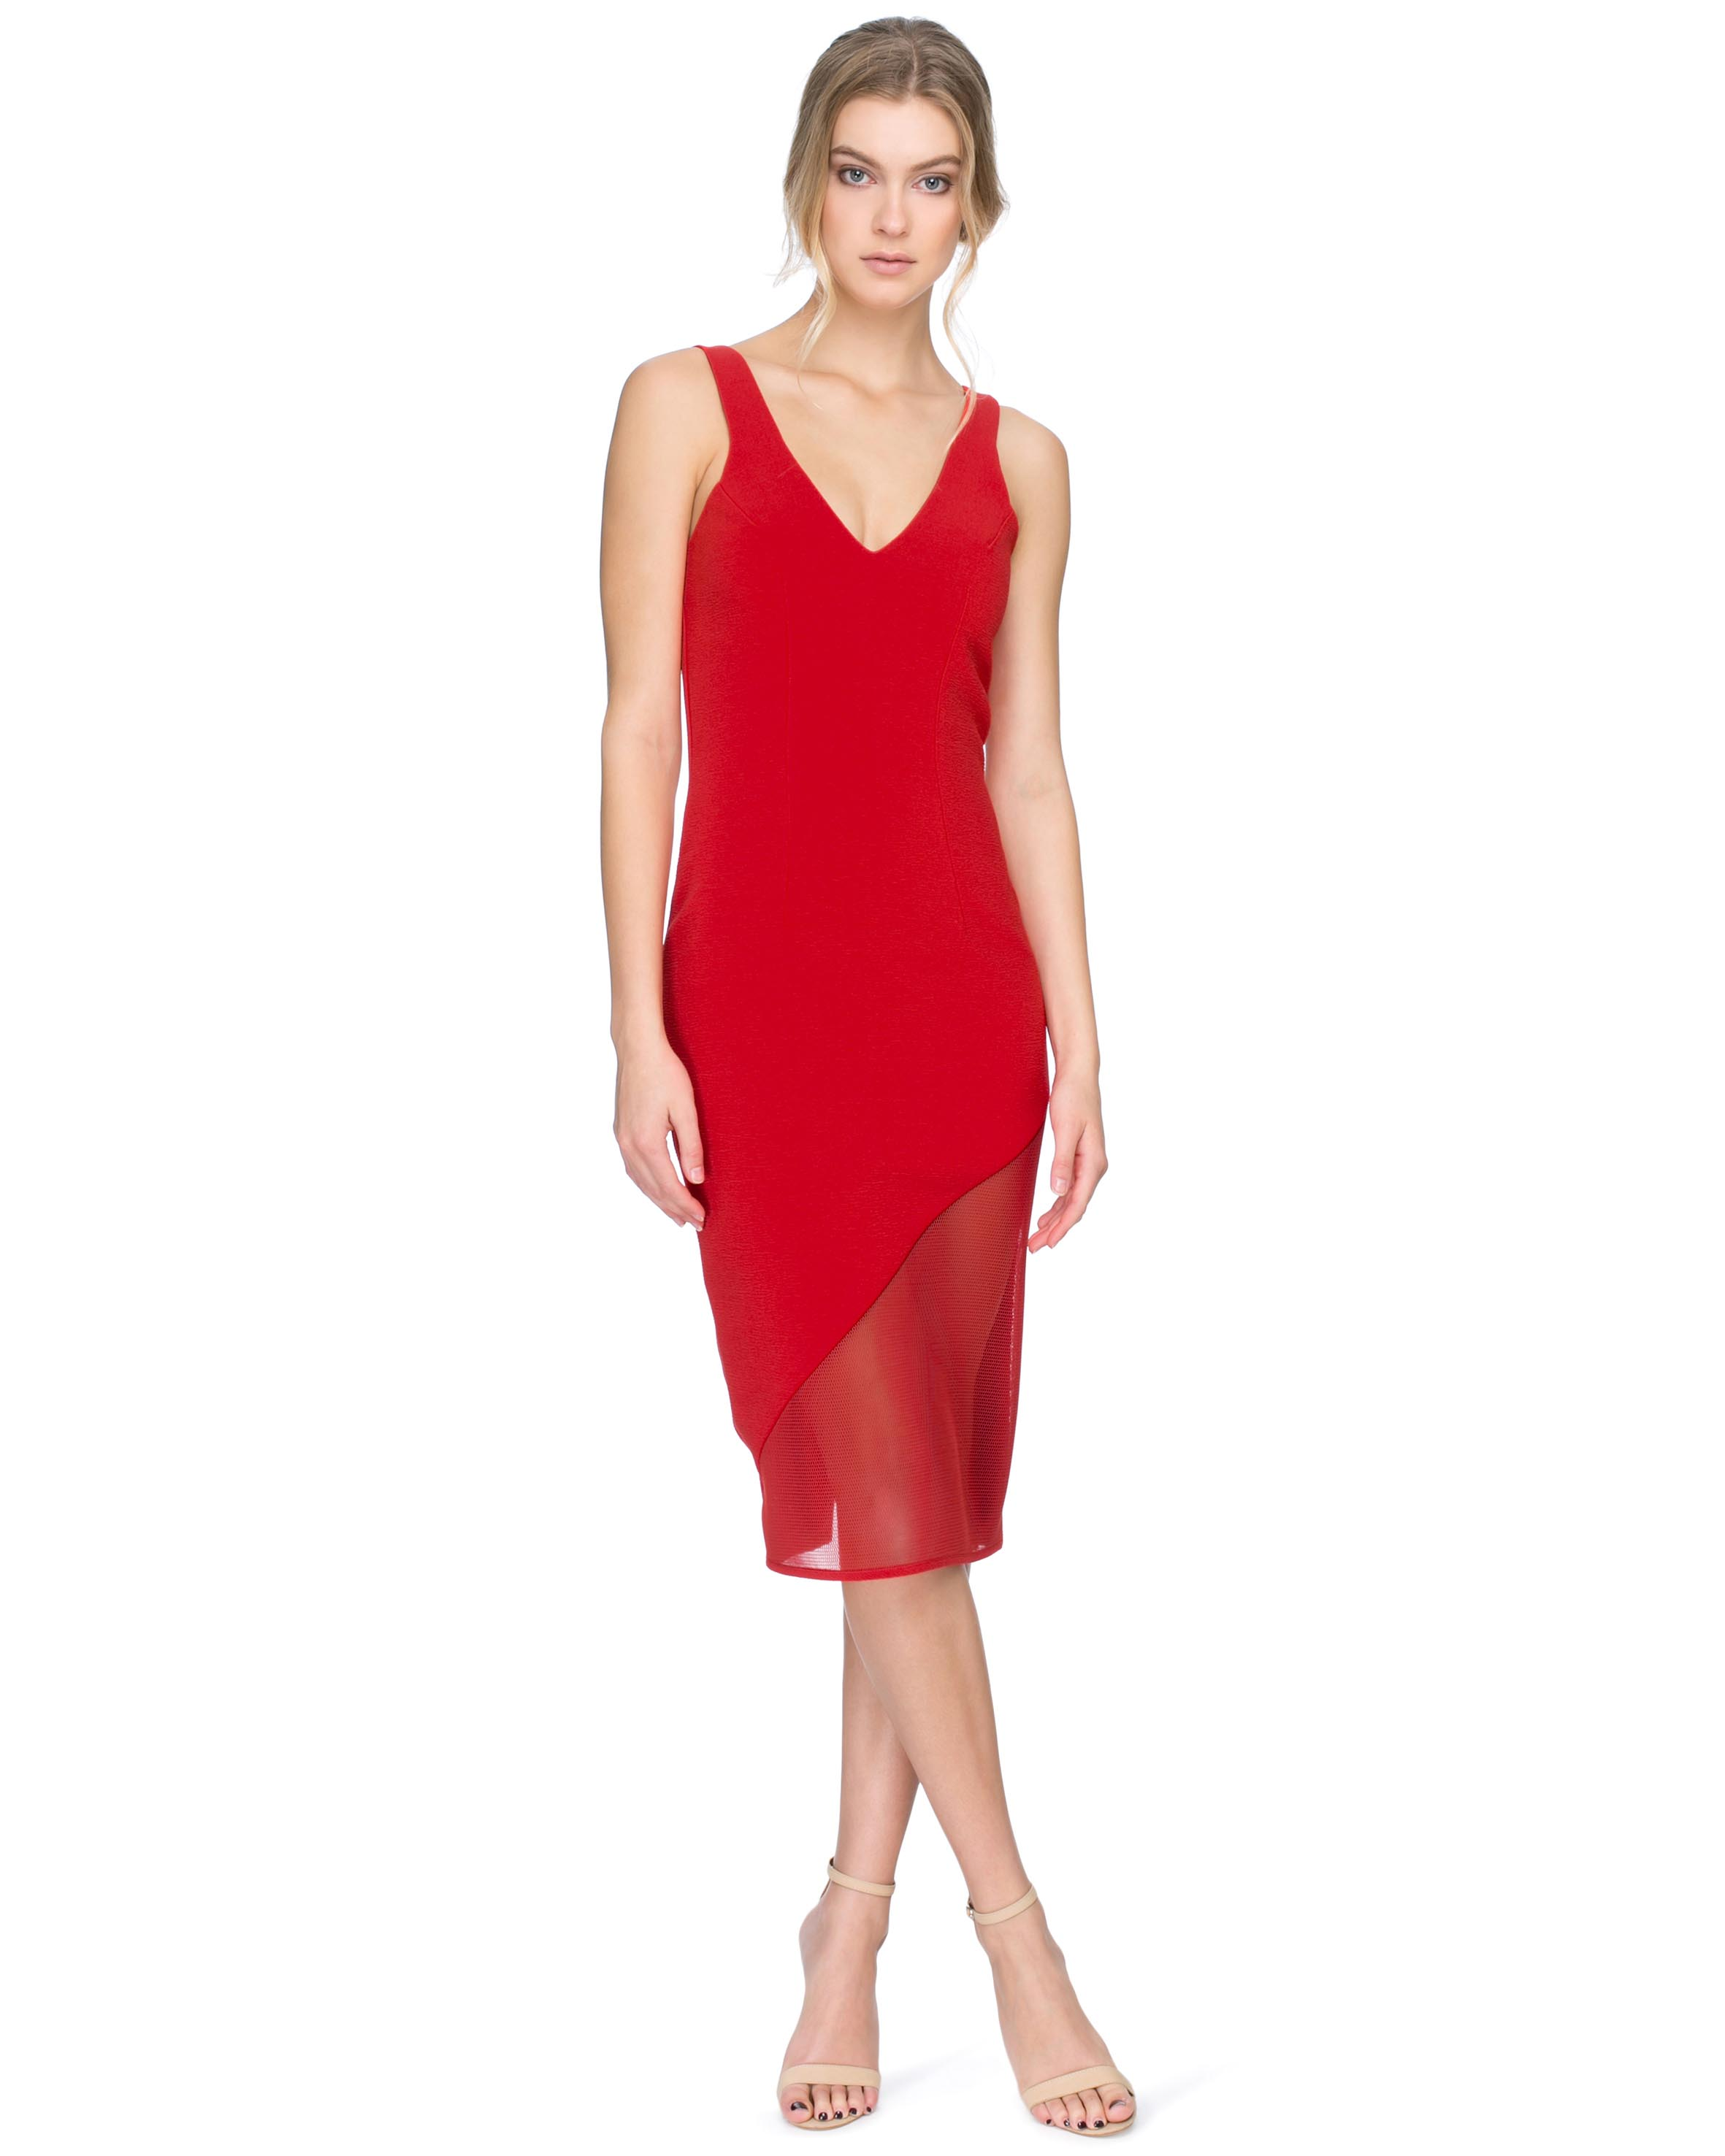 Where to buy cocktail dresses online